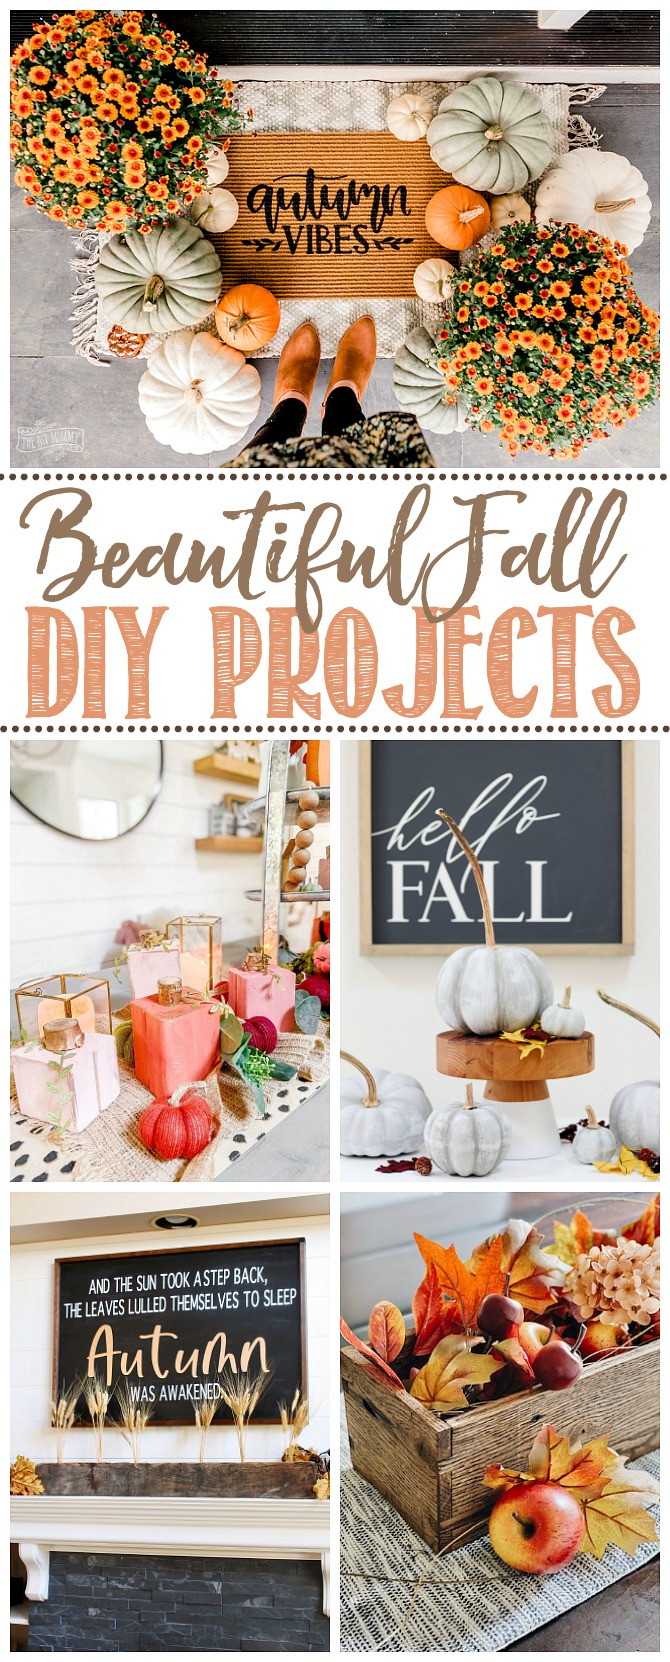 Beautiful collage of fall DIY projects.